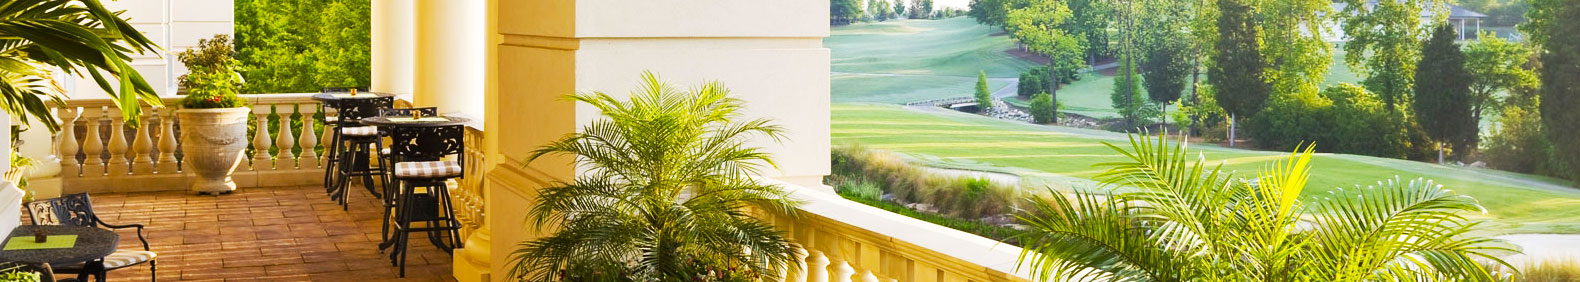 The beautiful porch that guests enjoy at the Ballantyne Hotel